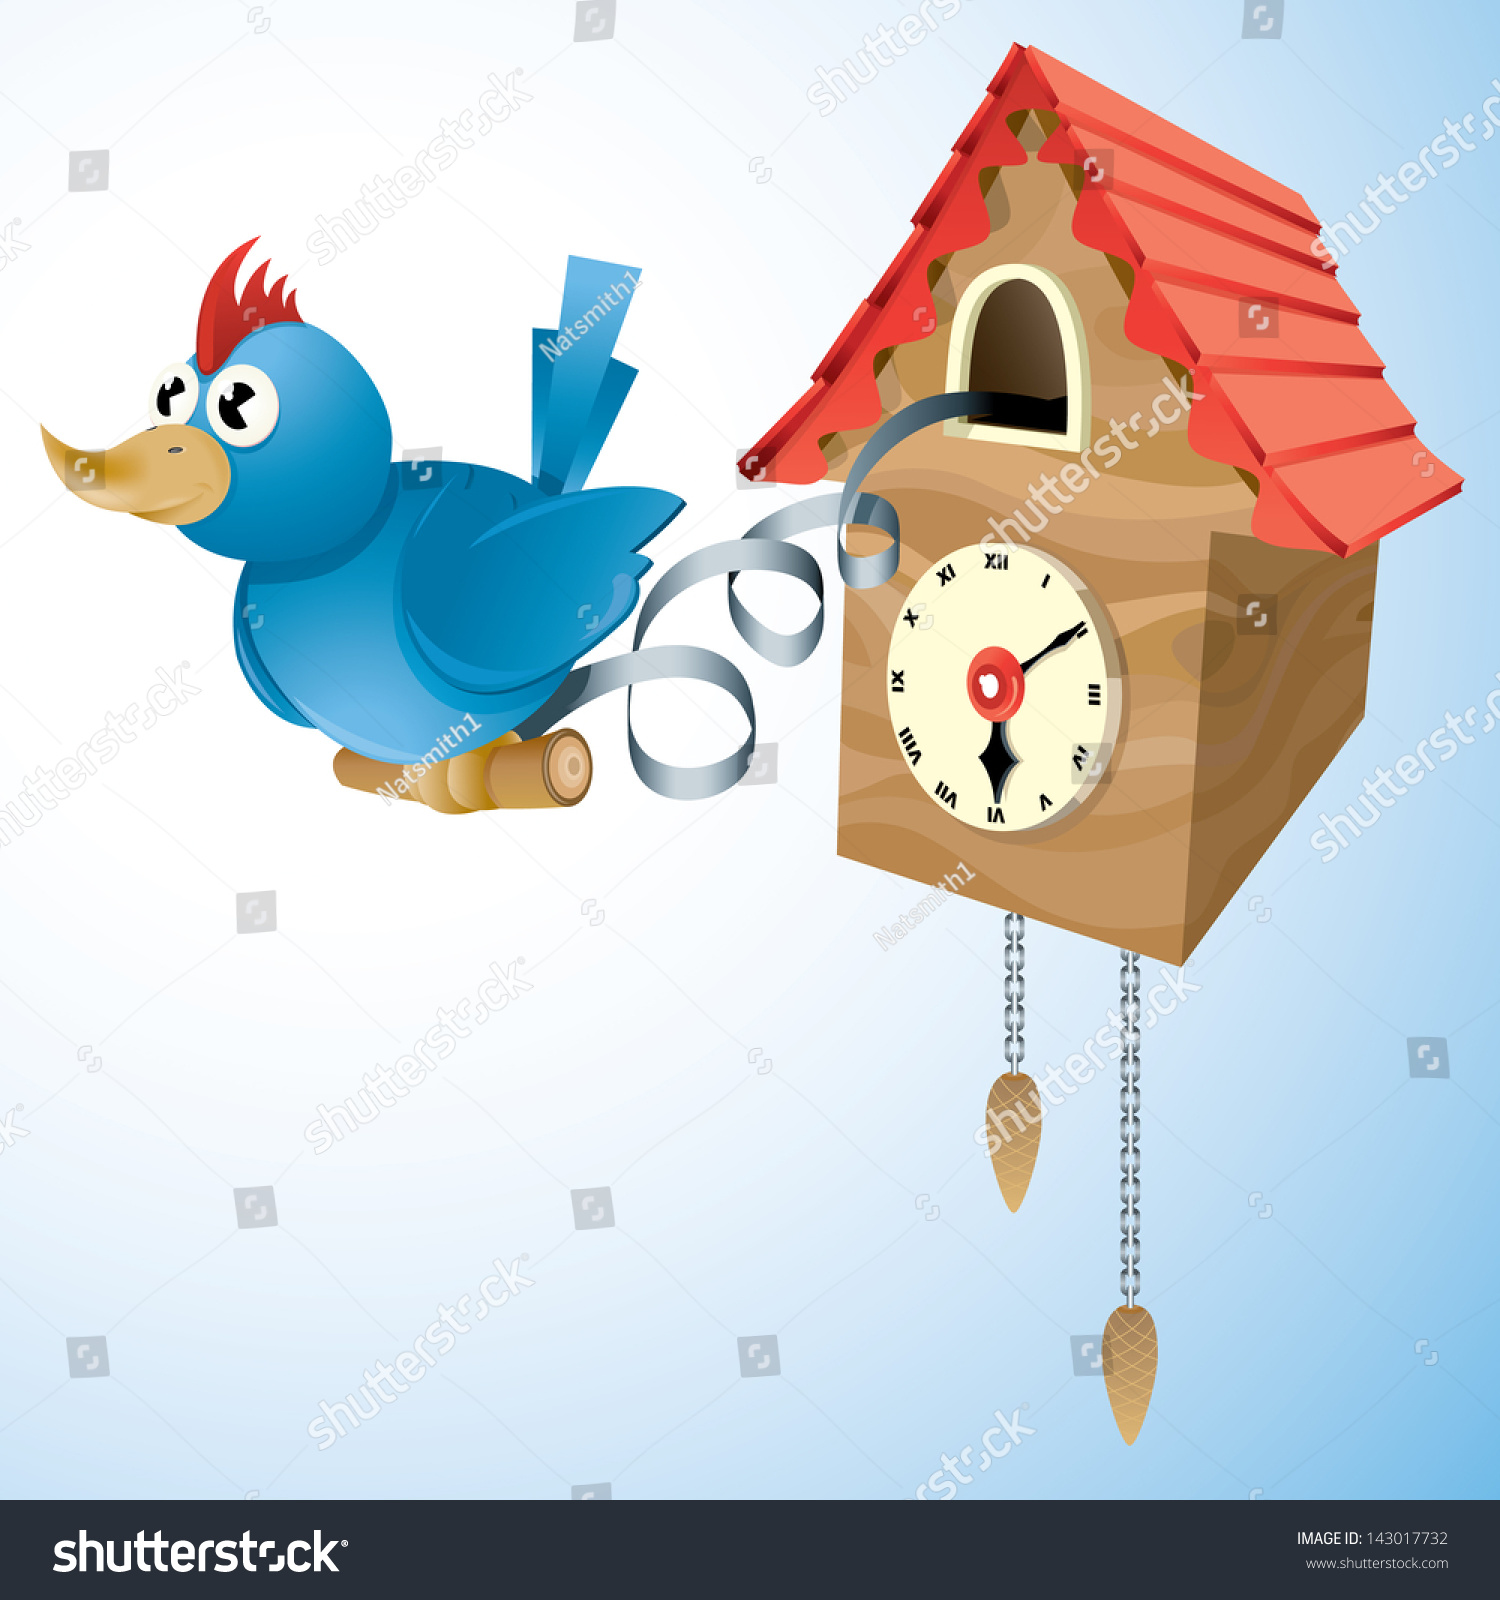 Stock Vector Vector Drawing Of A Cuckoo Clock Cuckoo Clock Easy To Edit Vector Drawing Easy To Edit Layers And on Vintage Blue Bird Clip Art